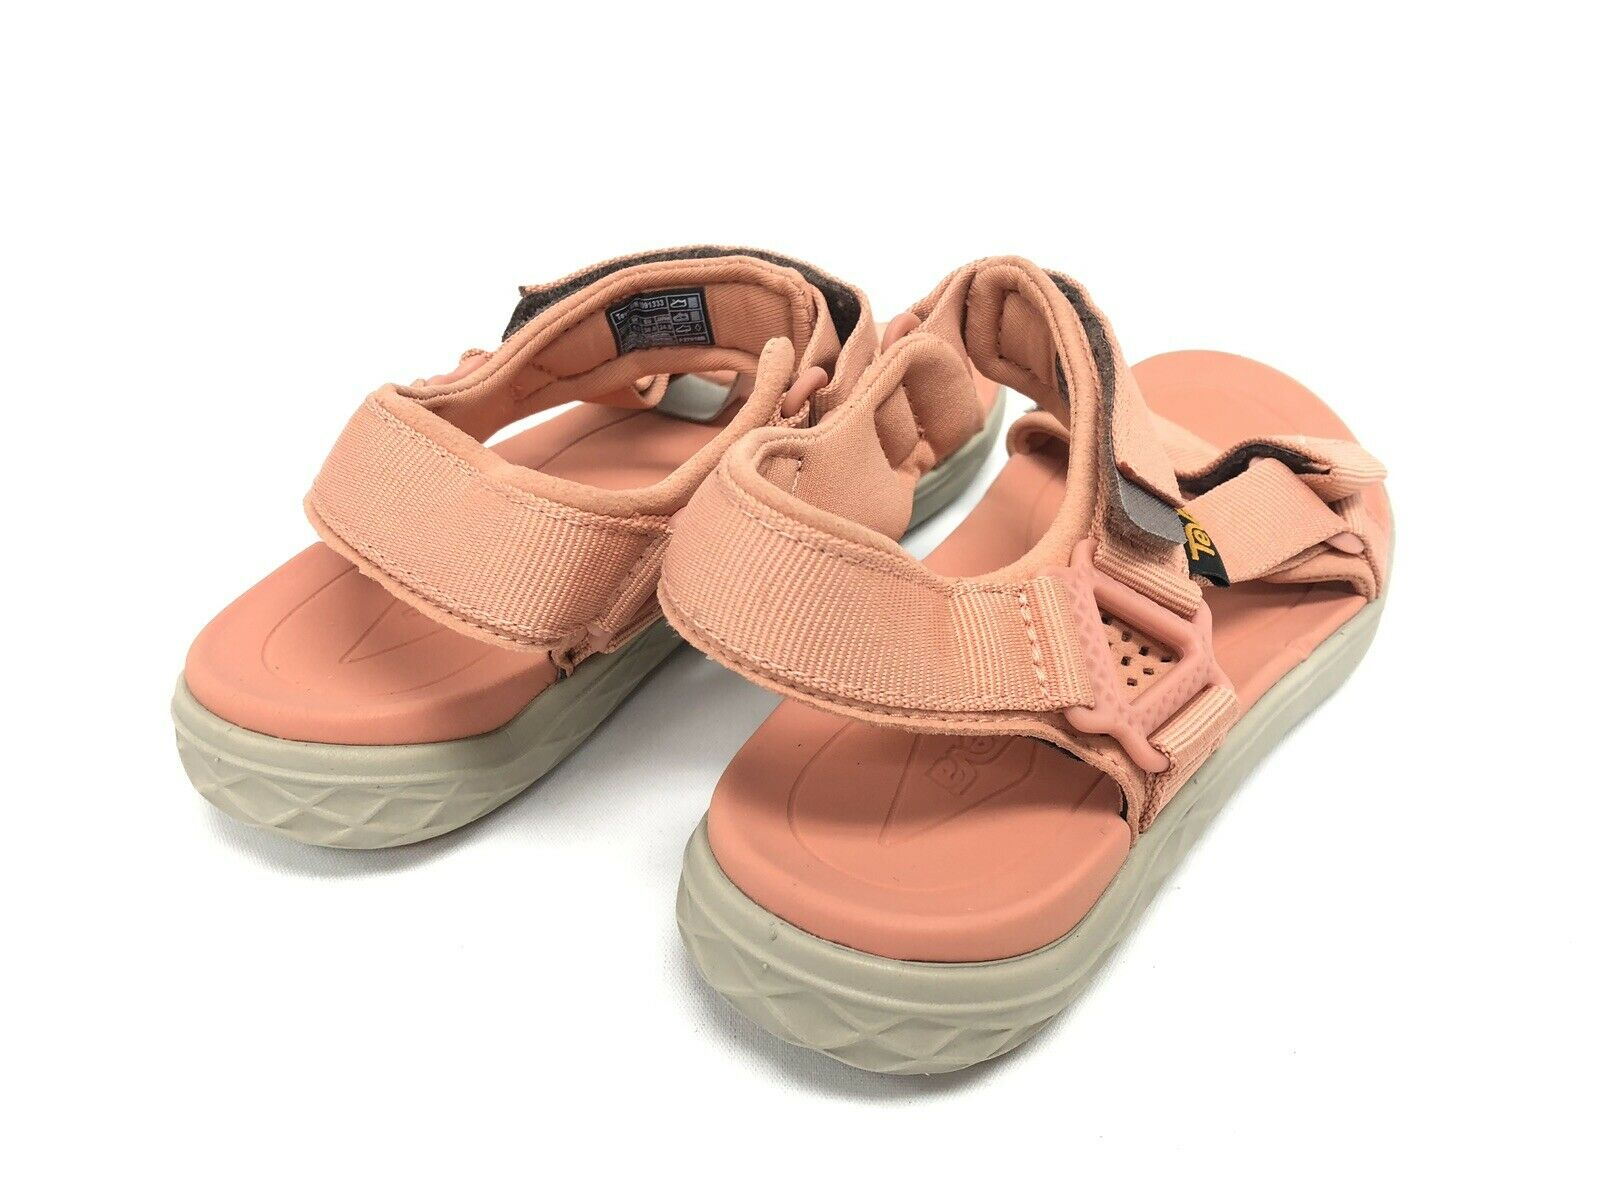 Teva Terra Float 2 Universal Coral Sand Women 1091333 Strap Strap Strap Sandal Outdoor 717049